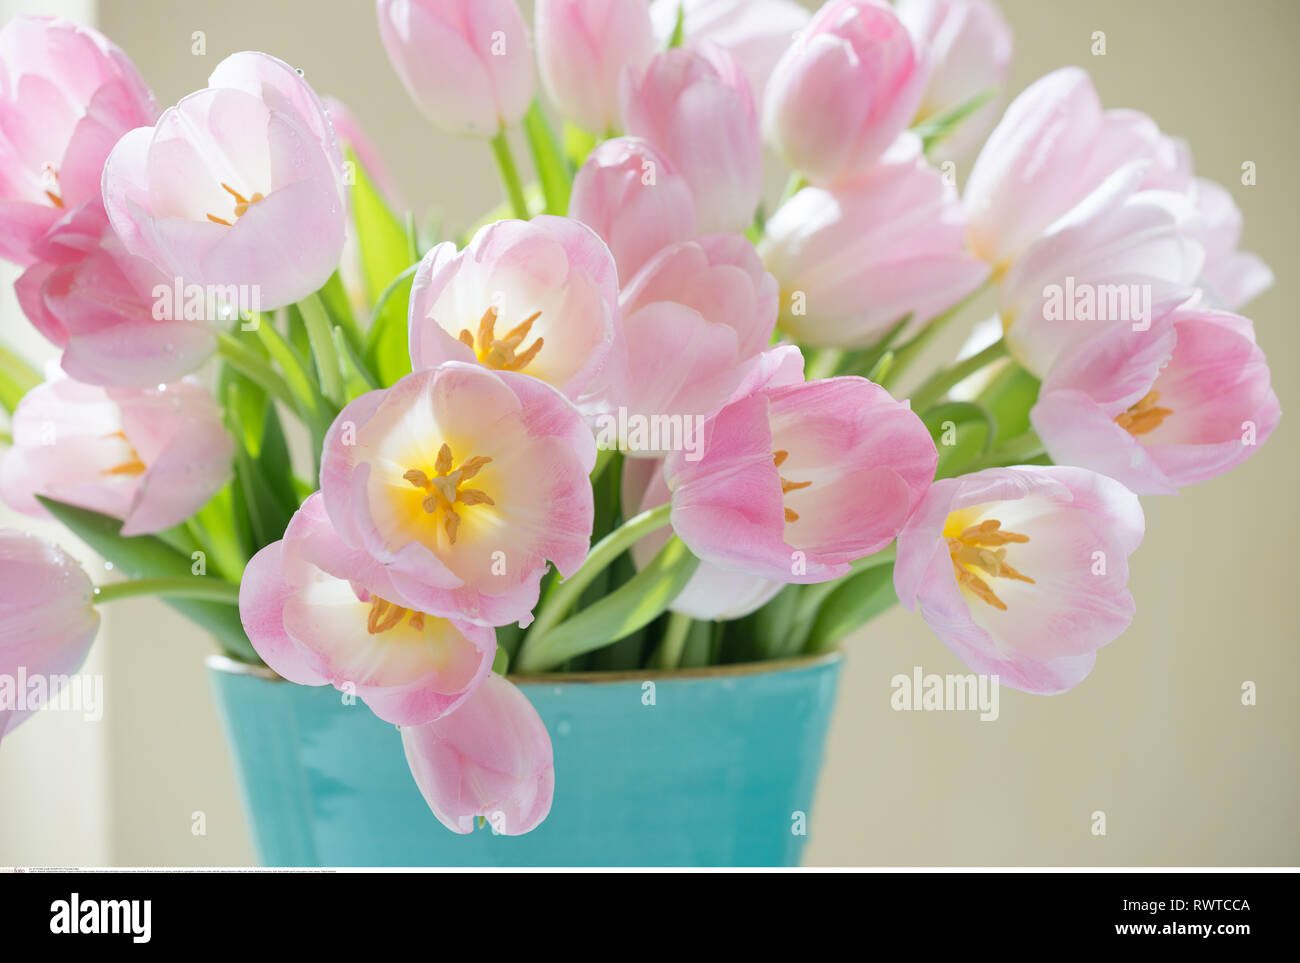 botany, flourish pale pink tulips in turquoi, Caution! For Greetingcard-Use / Postcard-Use In German Speaking Countries Certain Restrictions May Apply - Stock Image